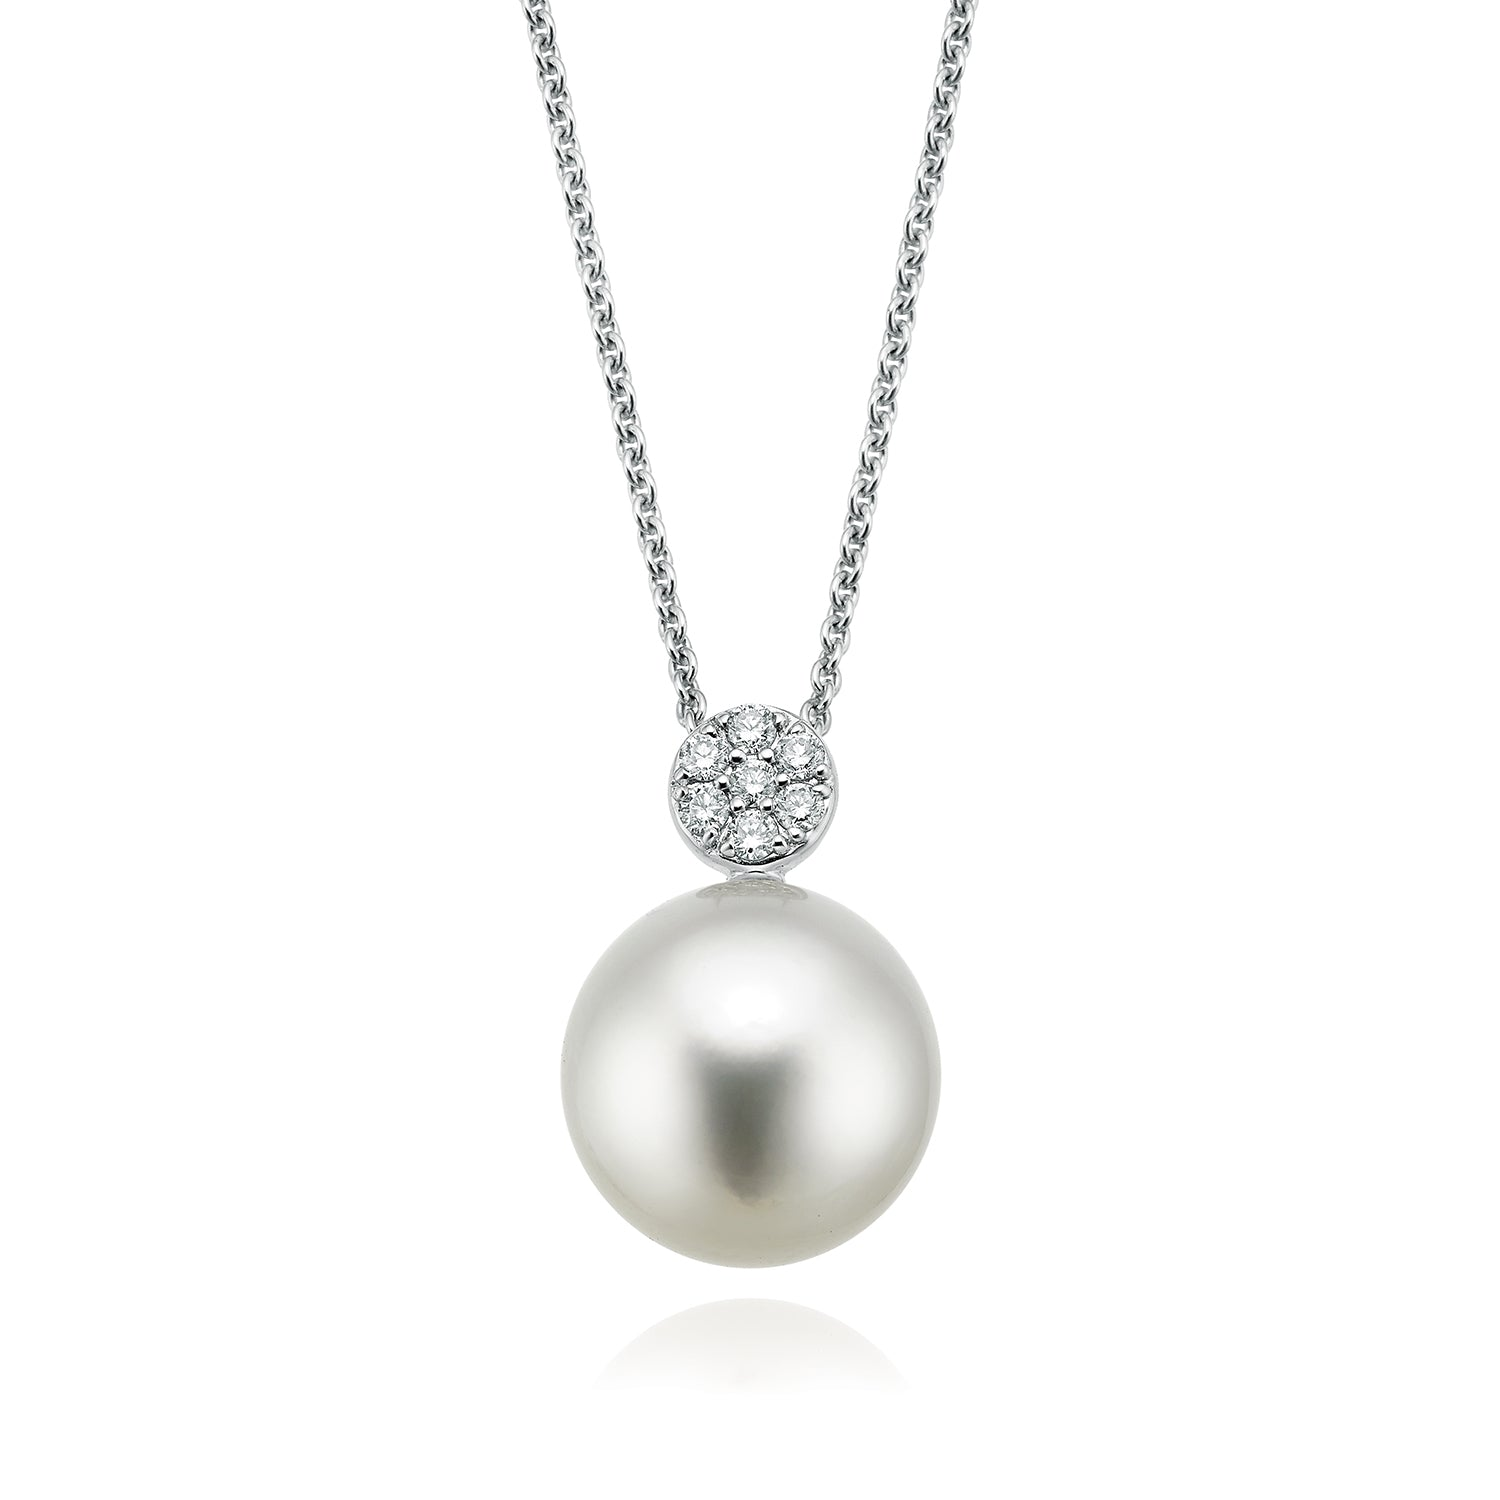 18ct White Gold 11mm South Sea Pearl with Diamond Set